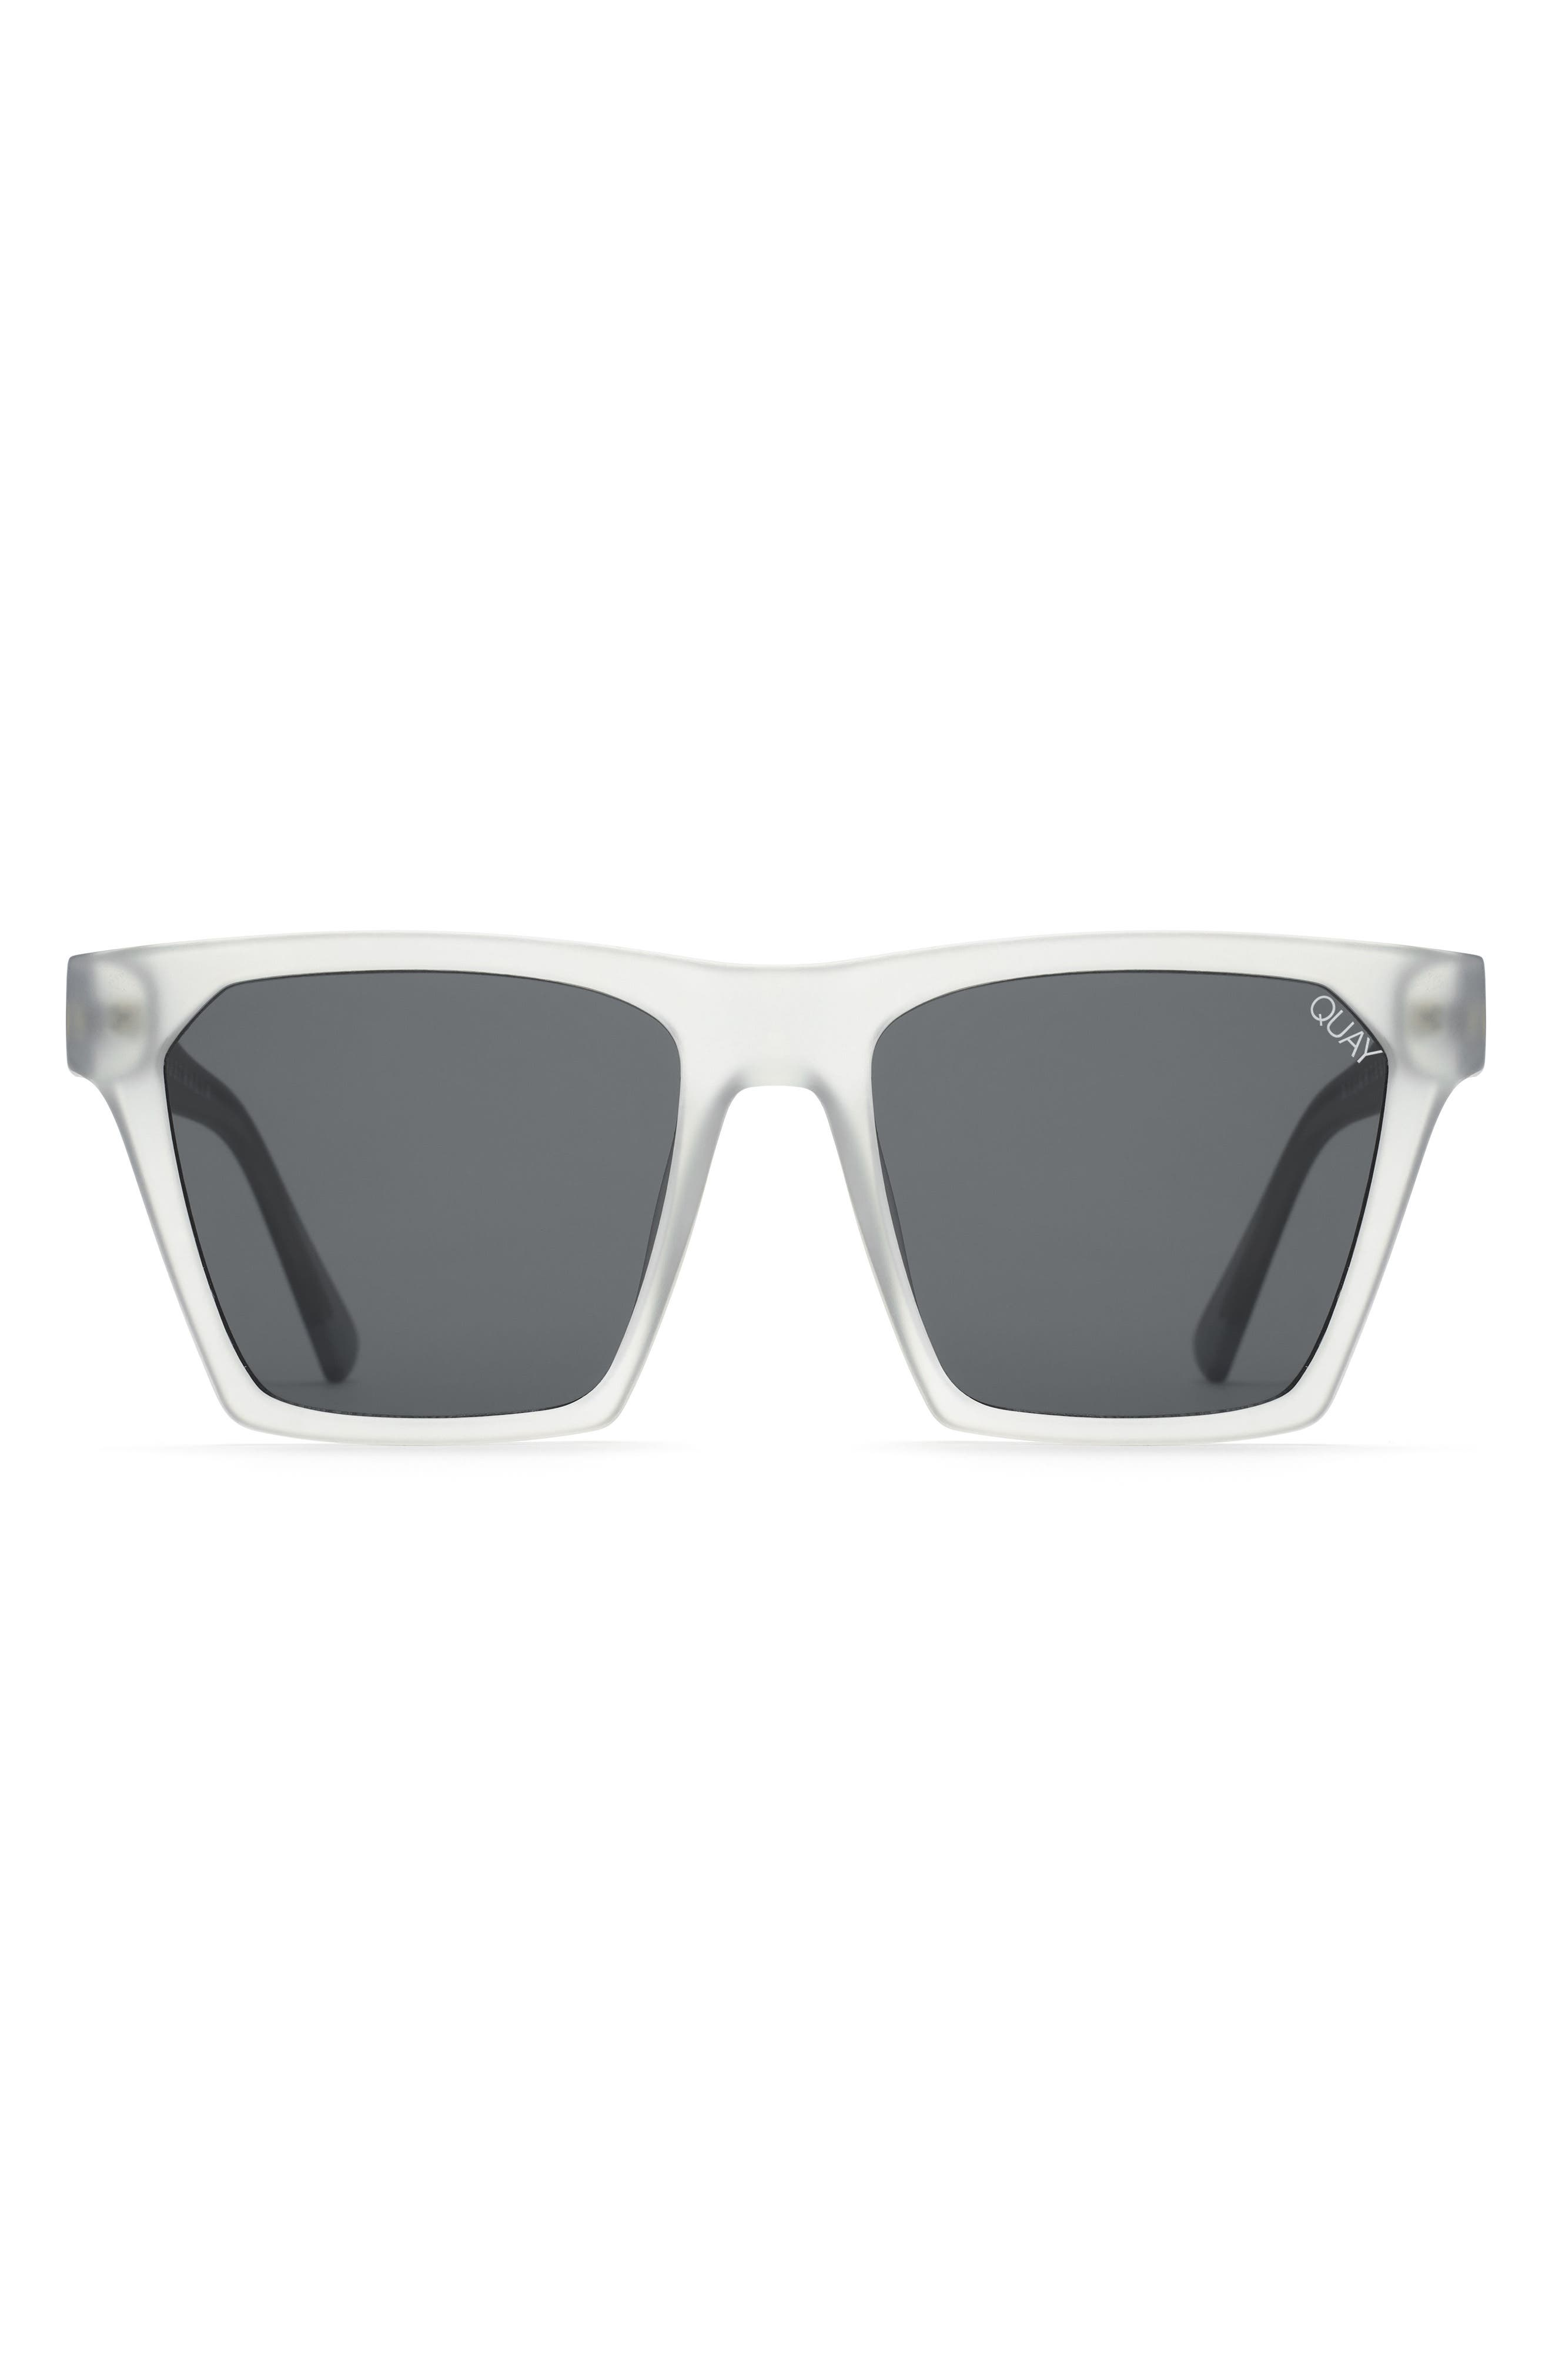 x Missguided Alright 55mm Square Sunglasses,                             Alternate thumbnail 4, color,                             White/ Smoke